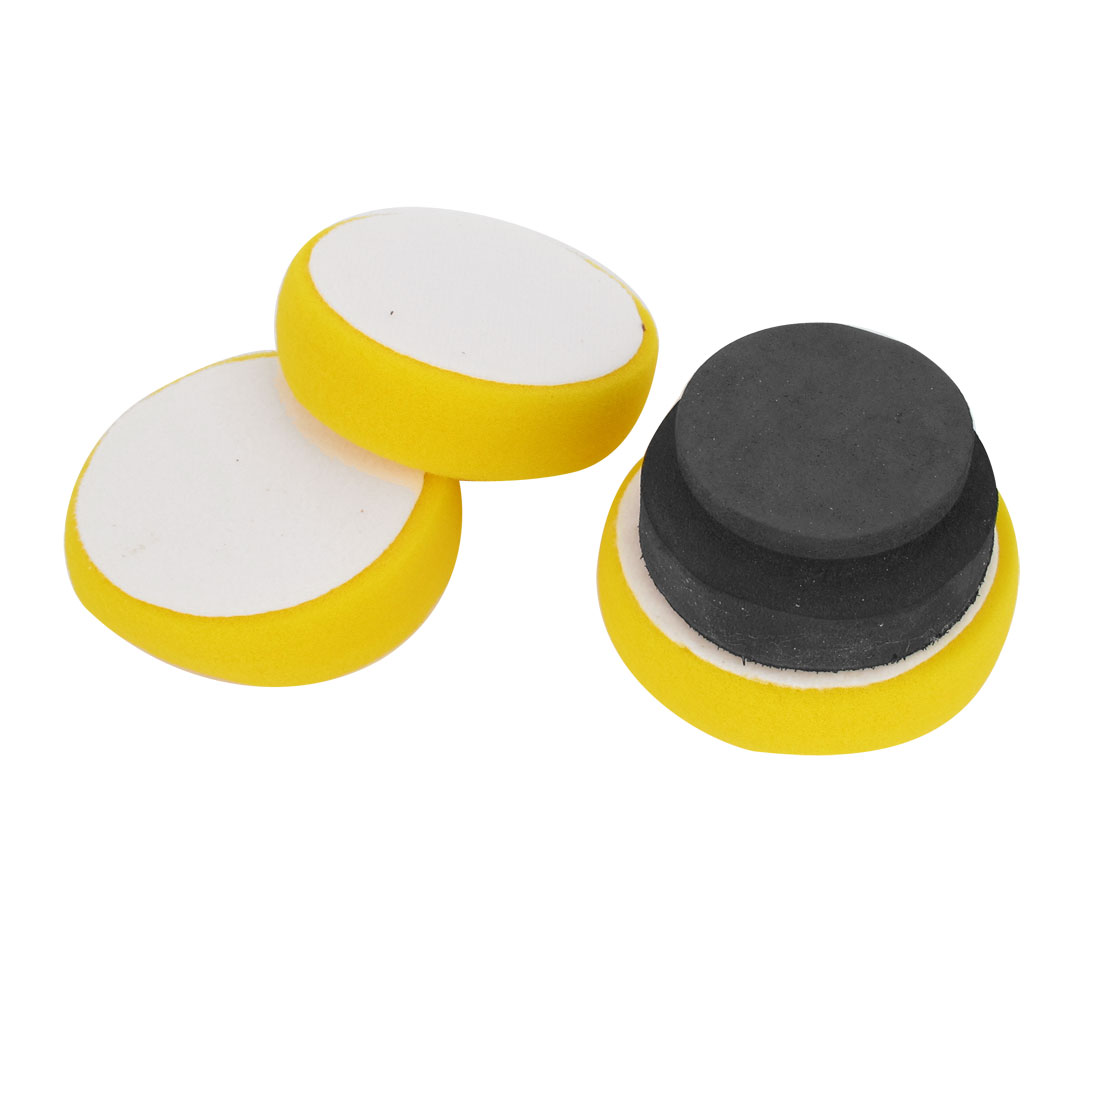 3 in 1 Yellow Black Car Cleaning Washer Round Waxing Sponge Pad w Polishing Wheel Ball Set